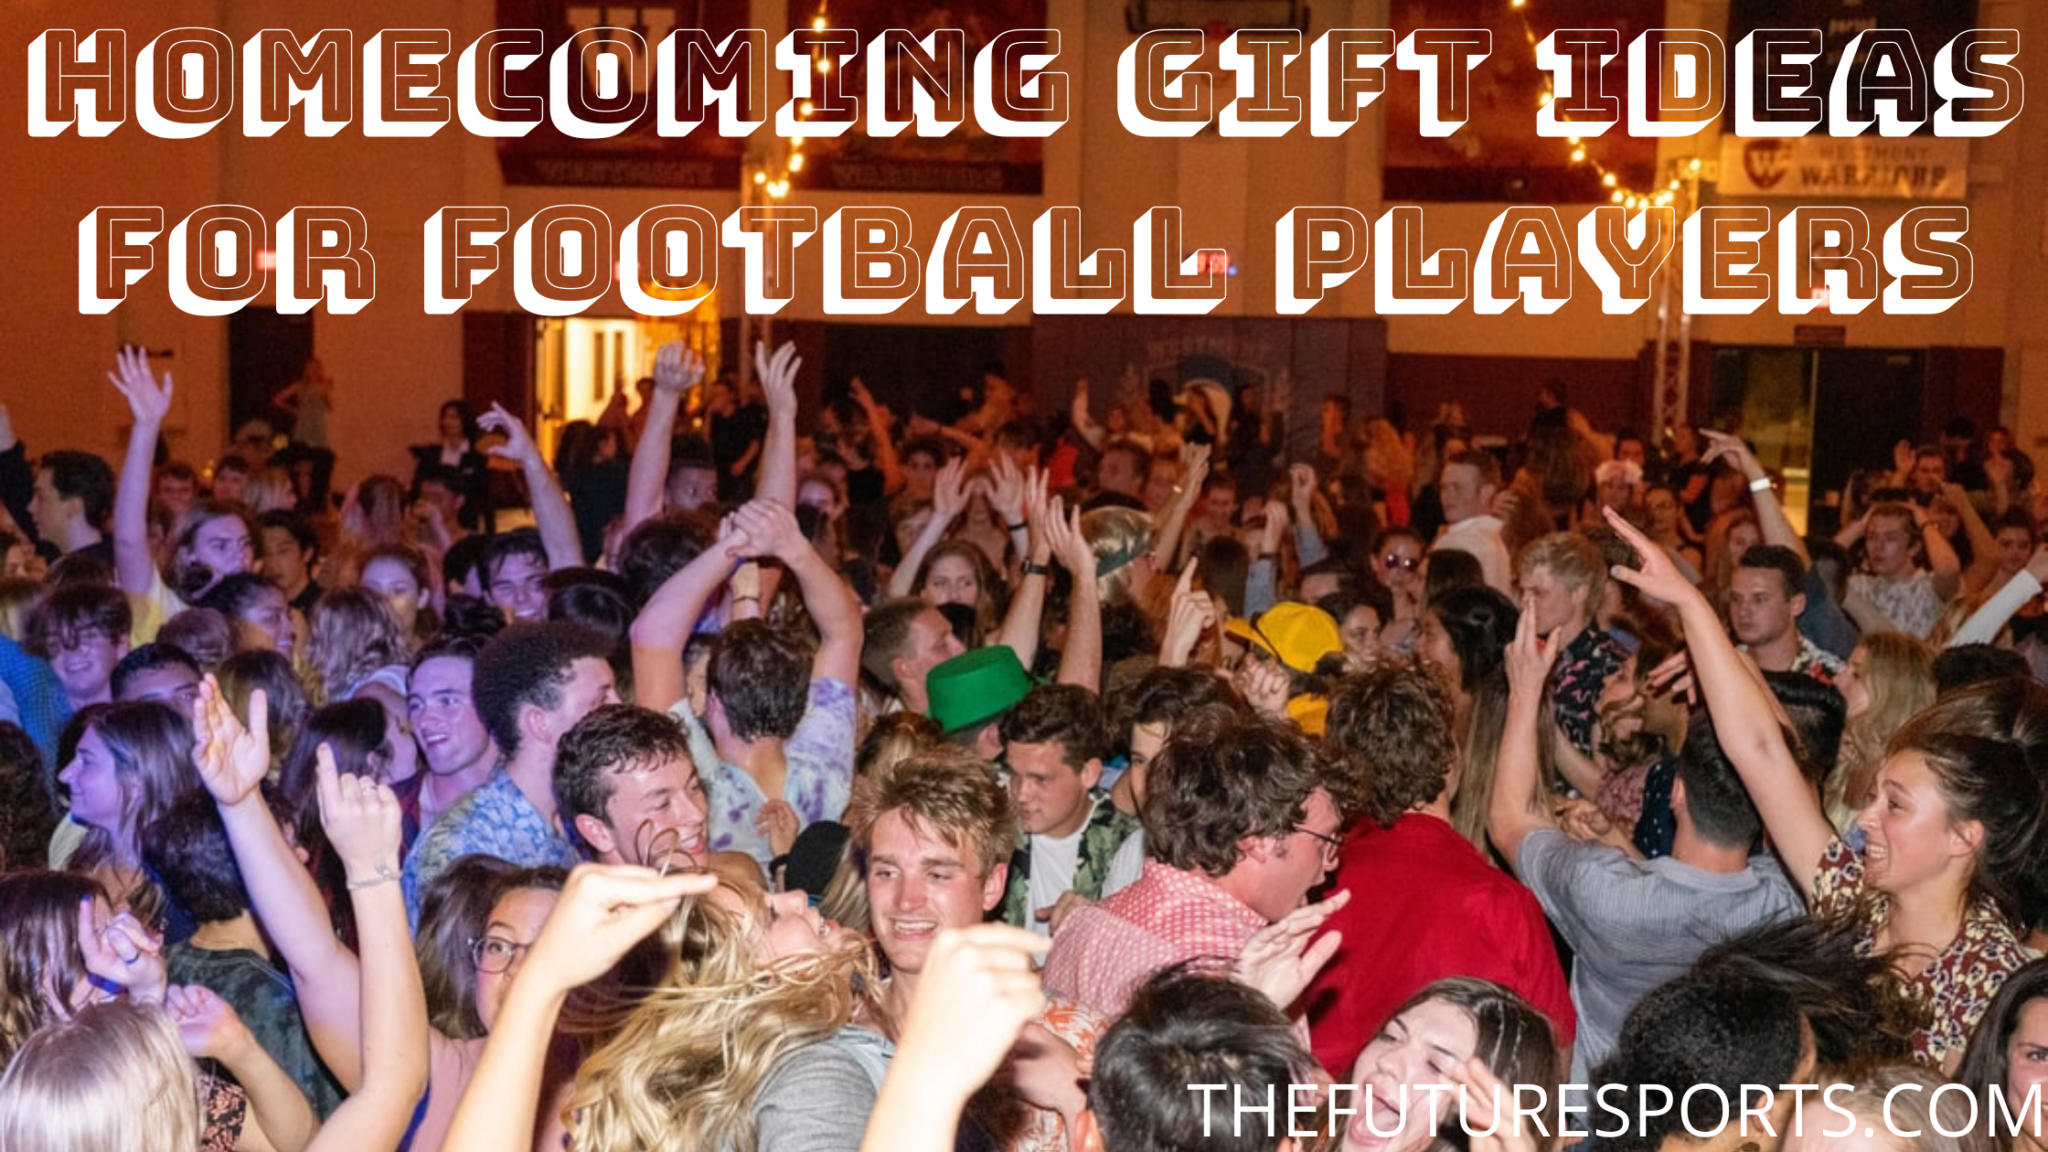 Homecoming gift ideas for football players